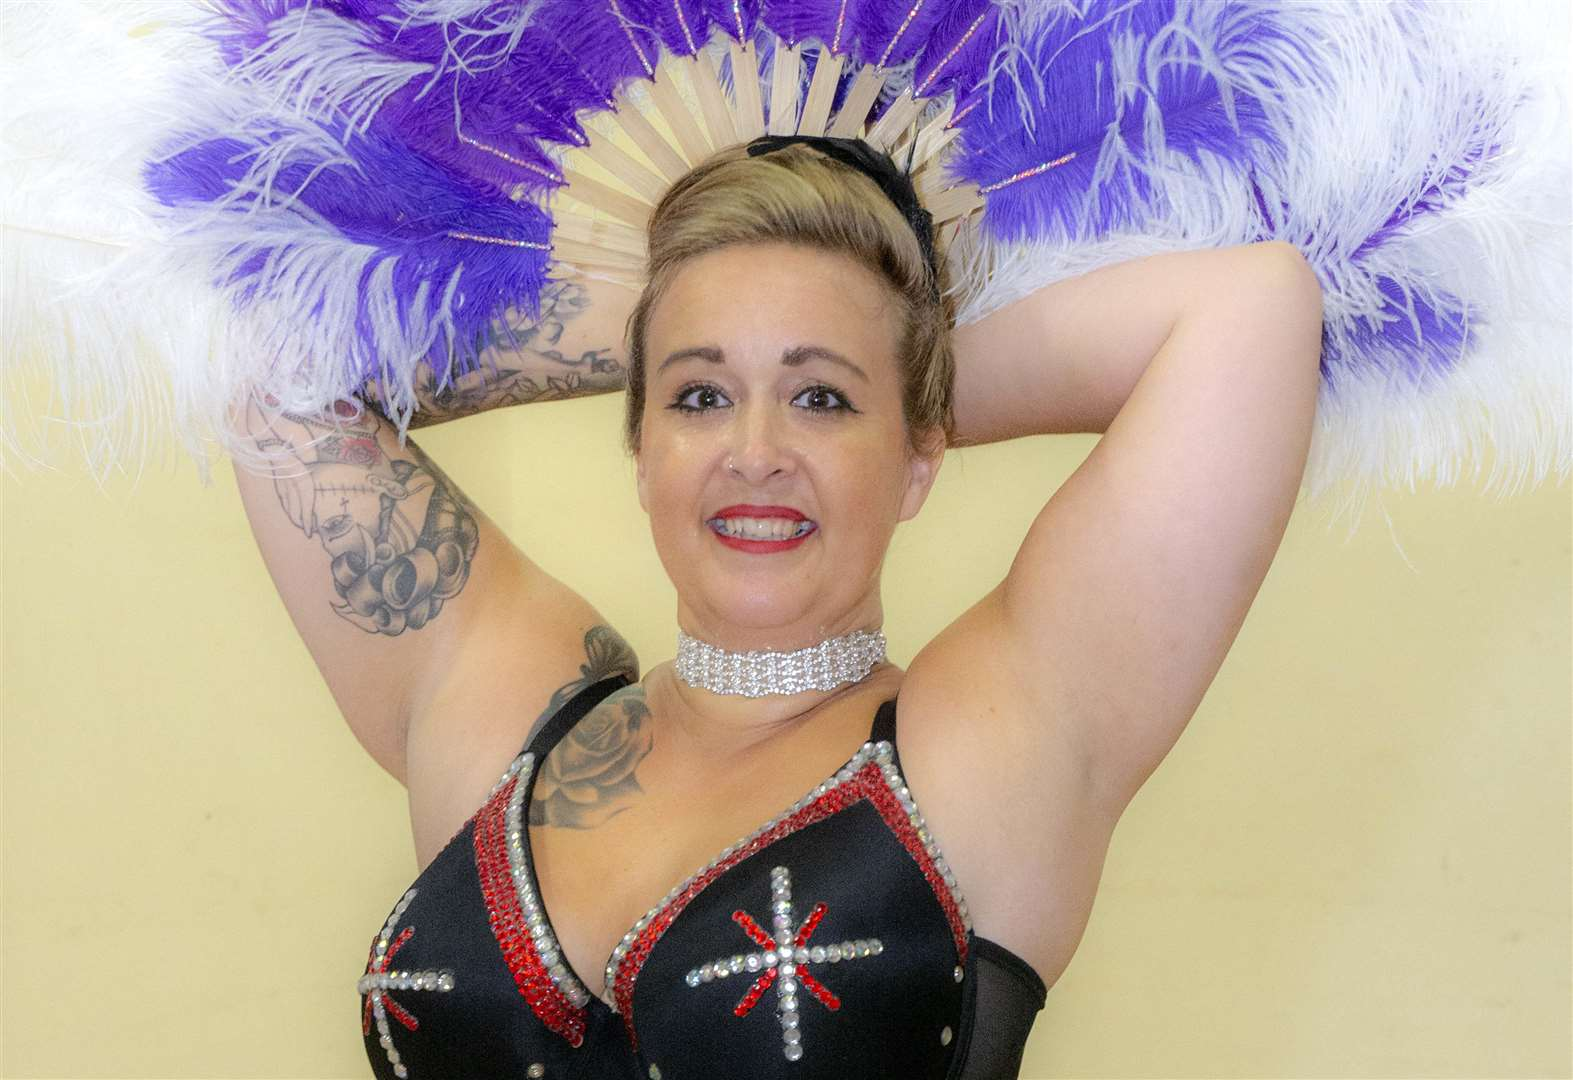 Ellie from Stamford gives first aid in burlesque costume